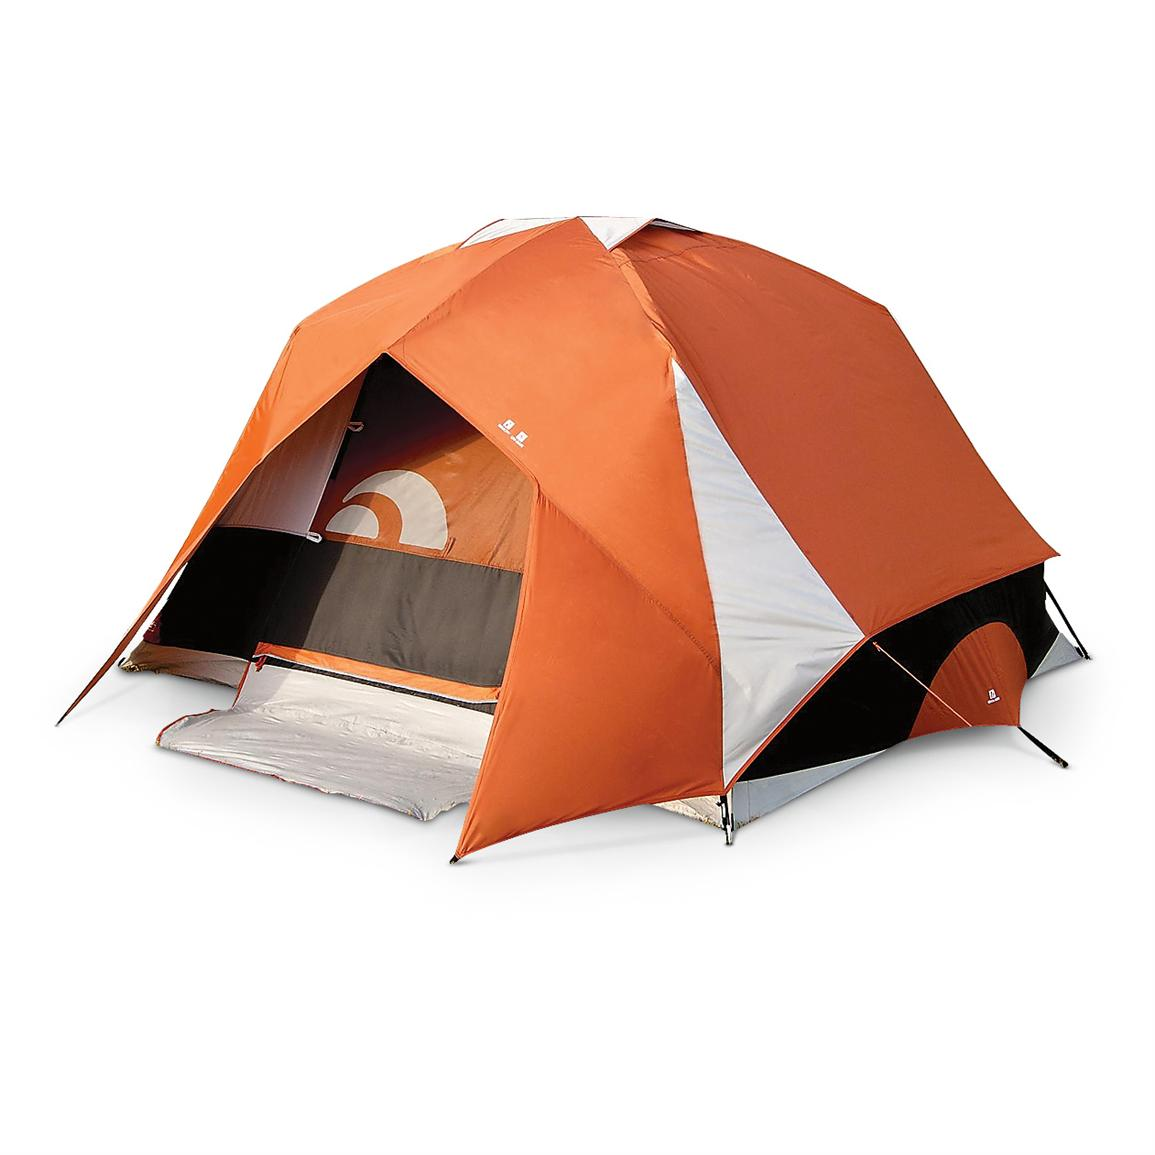 Igloo® Blue Mountain II Dome Tent, Orange / Tan